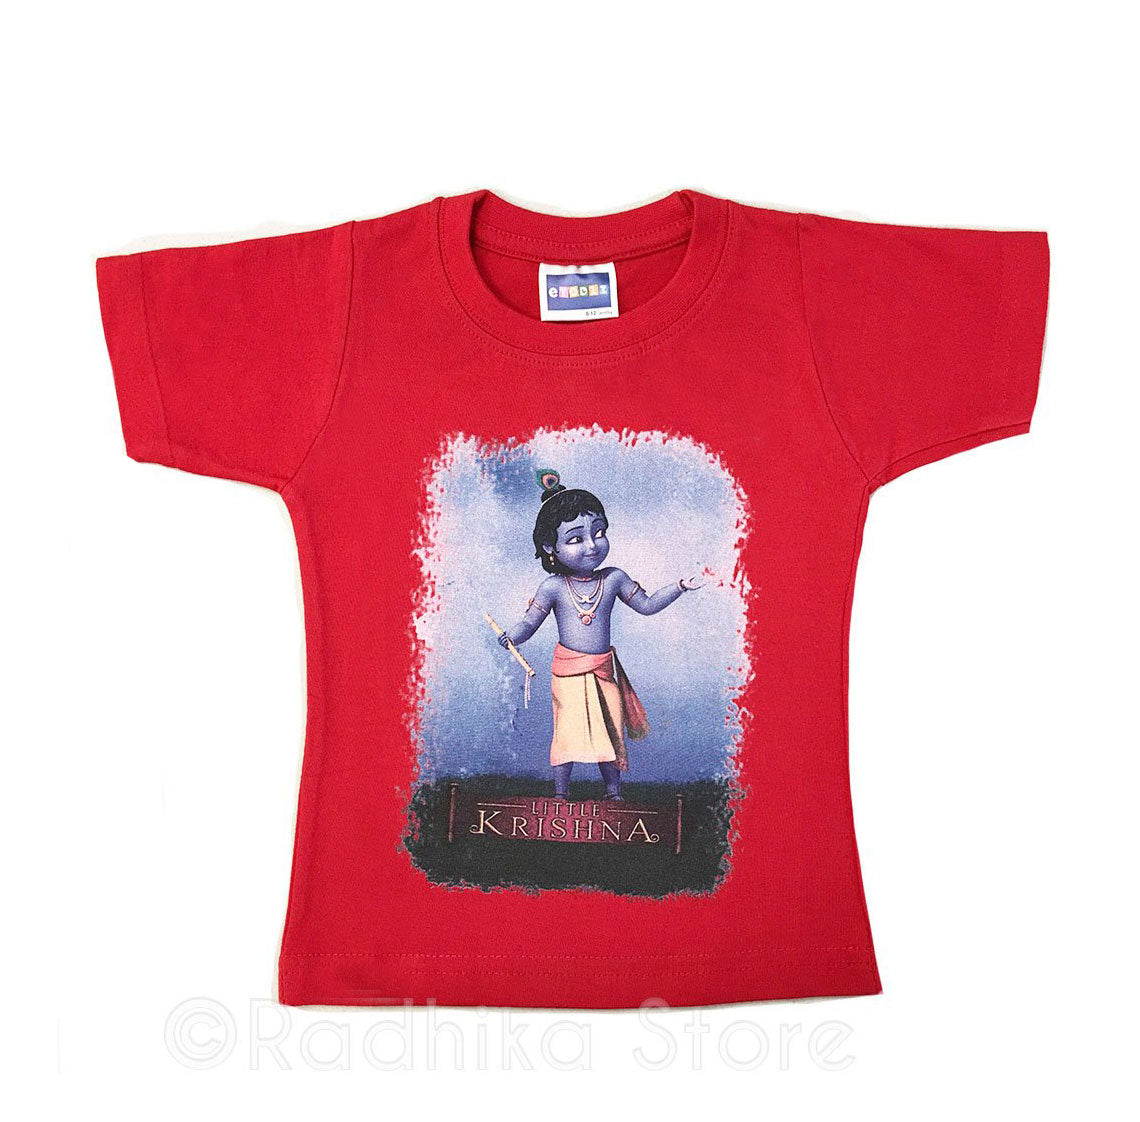 My Friend Little Krishna - Red- Short Sleeve- Size 6 to 12 Months